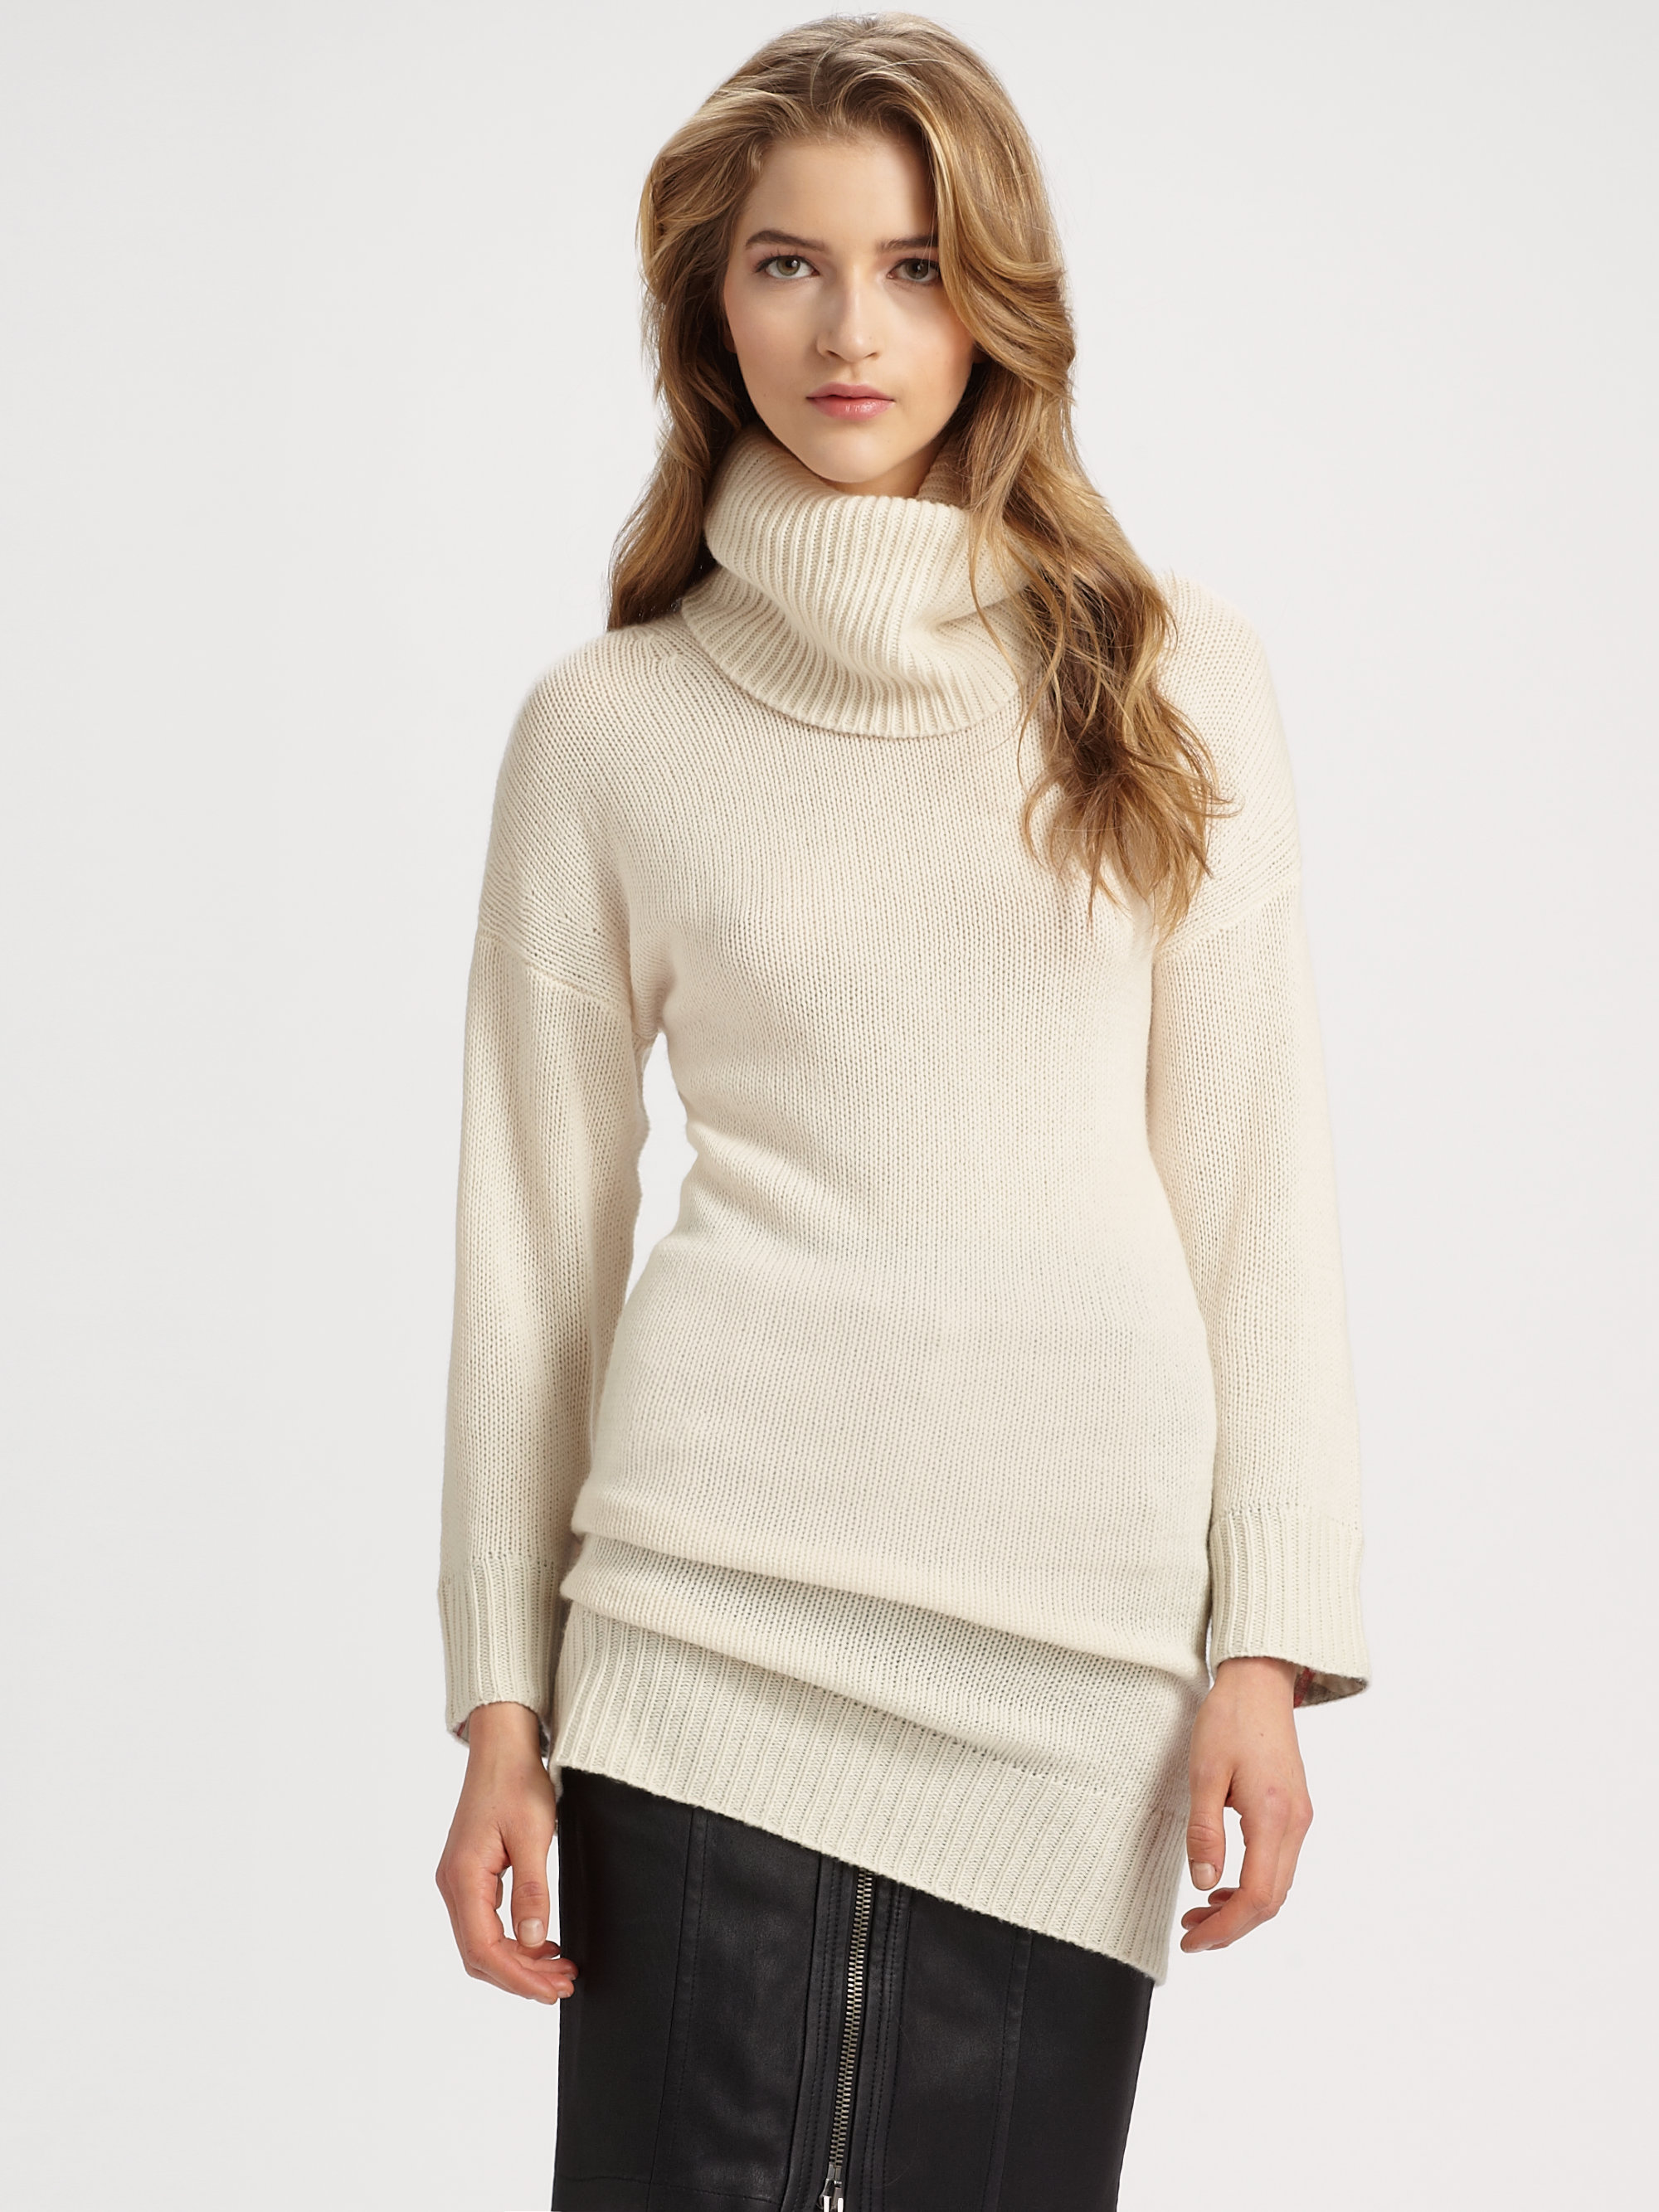 Burberry brit Chunky Turtleneck Tunic Sweater in Natural | Lyst